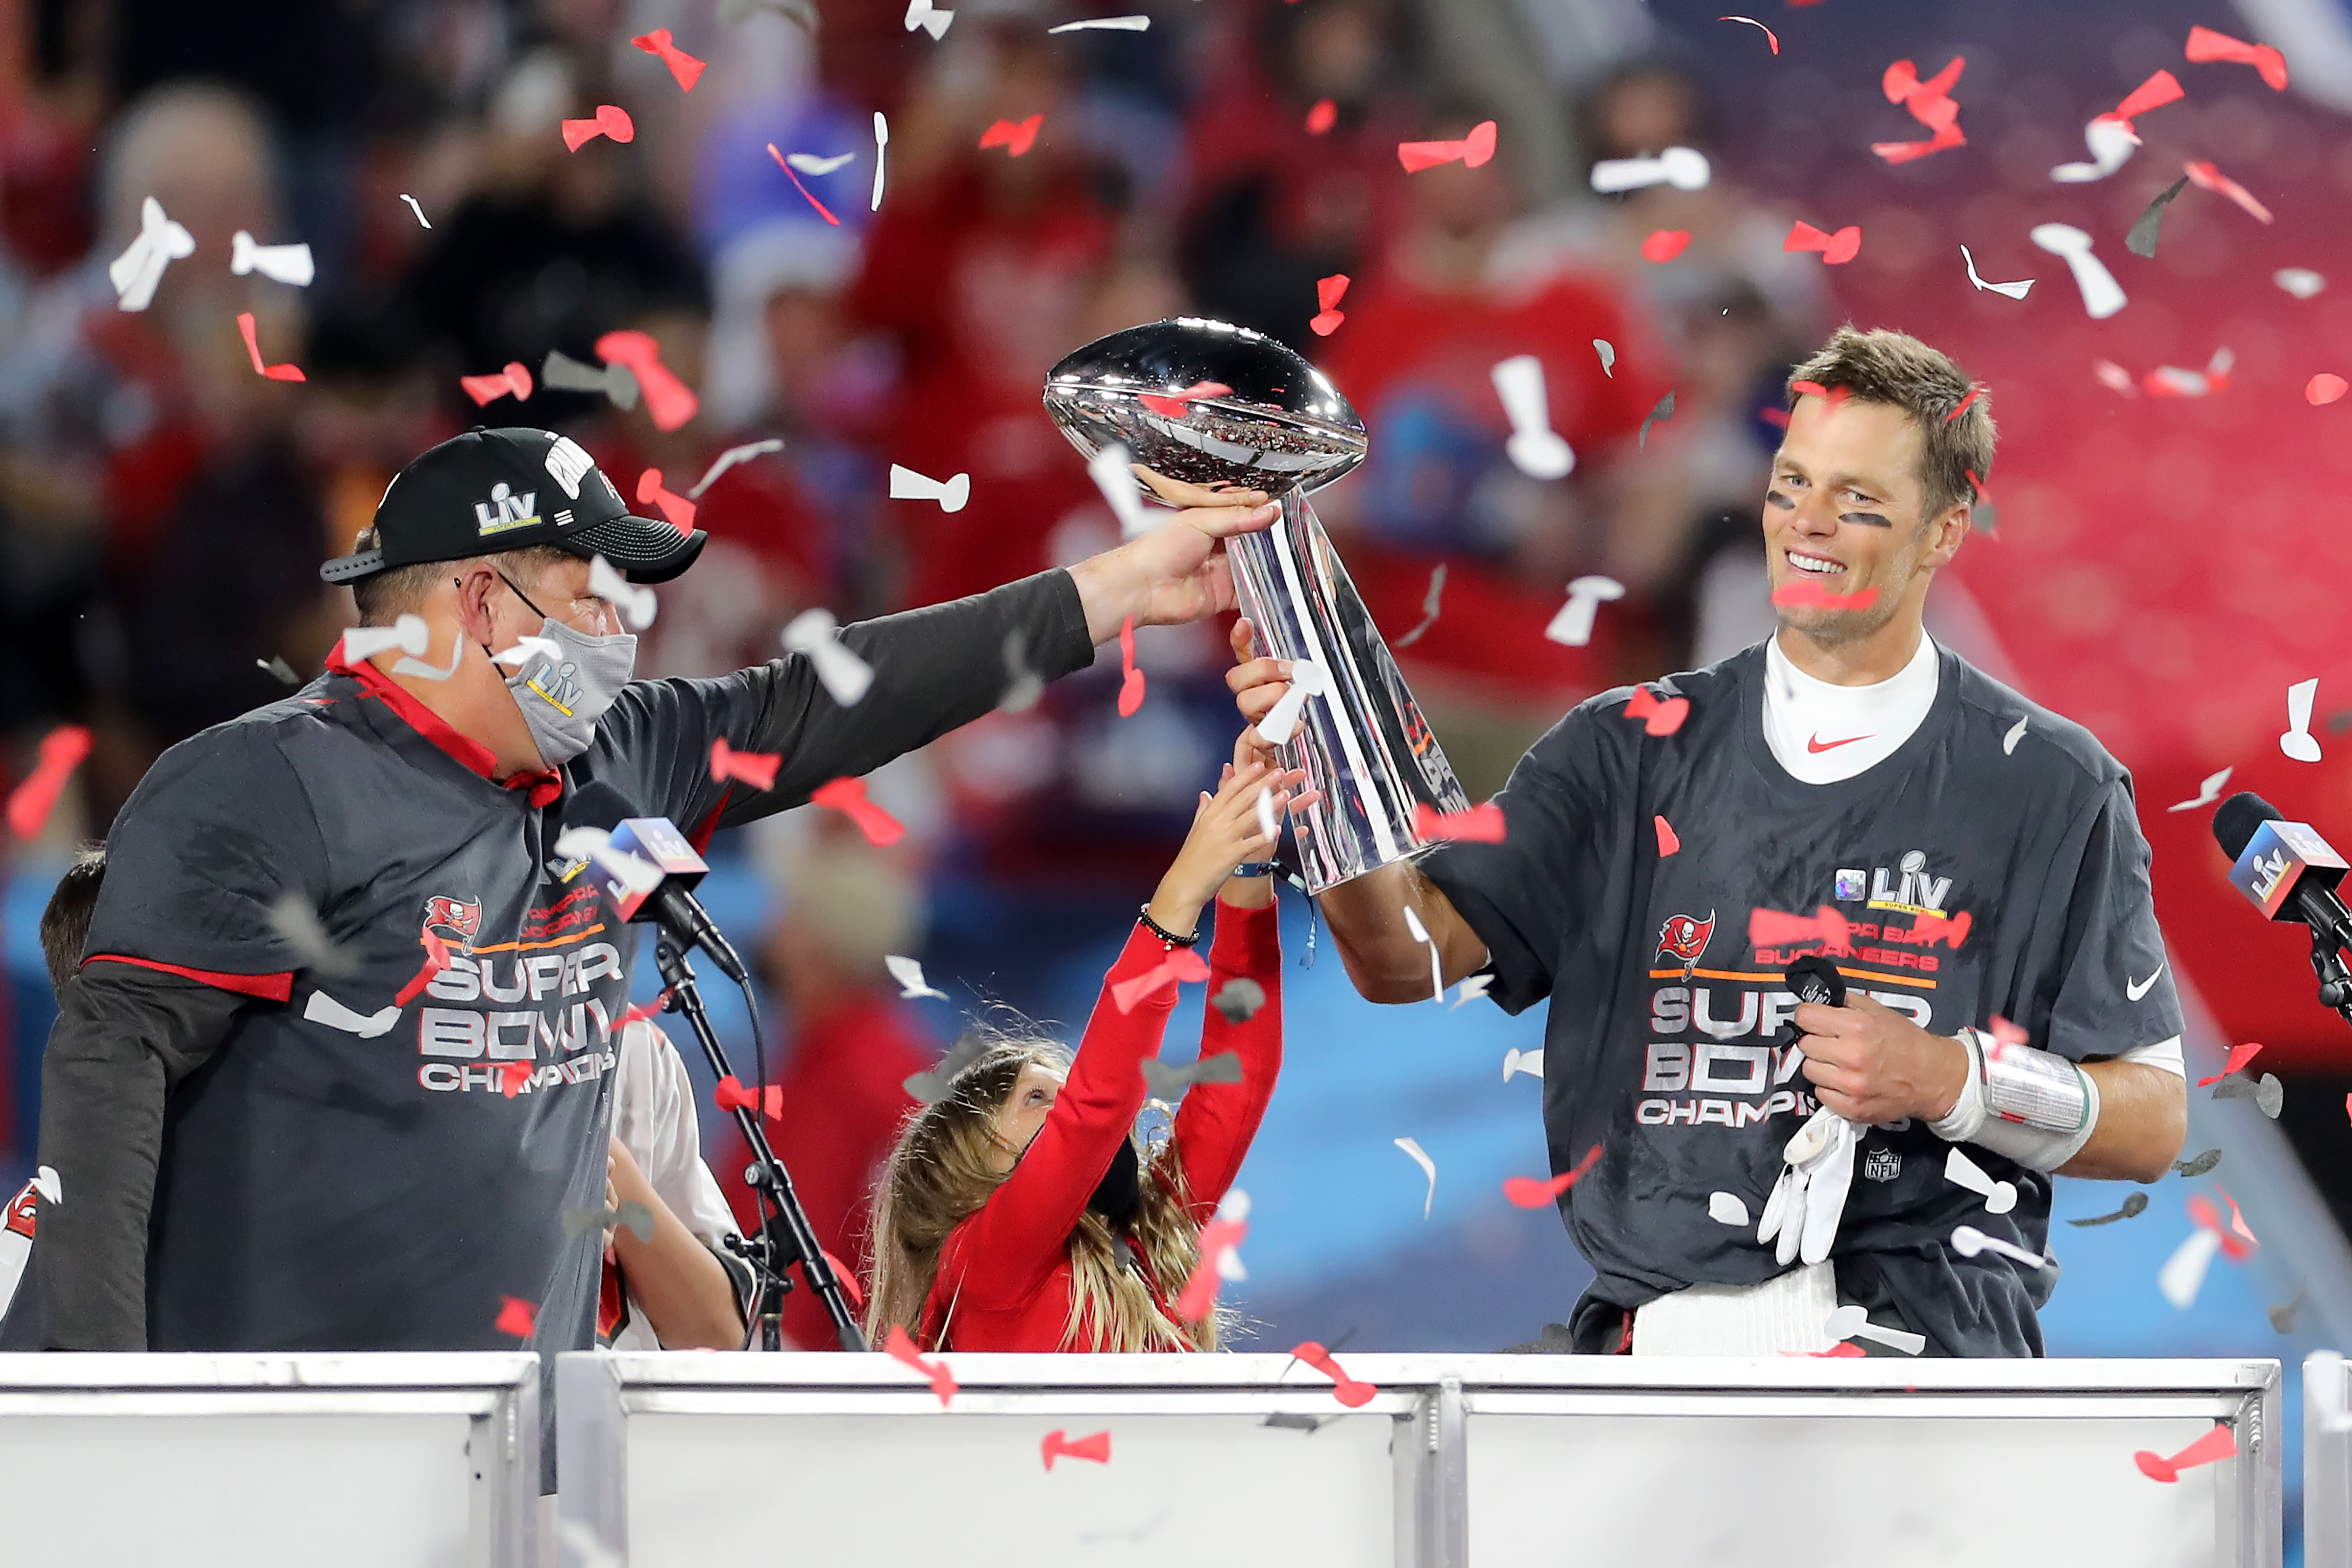 Super Bowl MVP Tom Brady (12) of the Buccaneers accepts the Lombardi Trophy from General Manager Jason Licht after the Super Bowl LV game between the Kansas City Chiefs and the Tampa Bay Buccaneers on February 7, 2021 at Raymond James Stadium, in Tampa, FL.